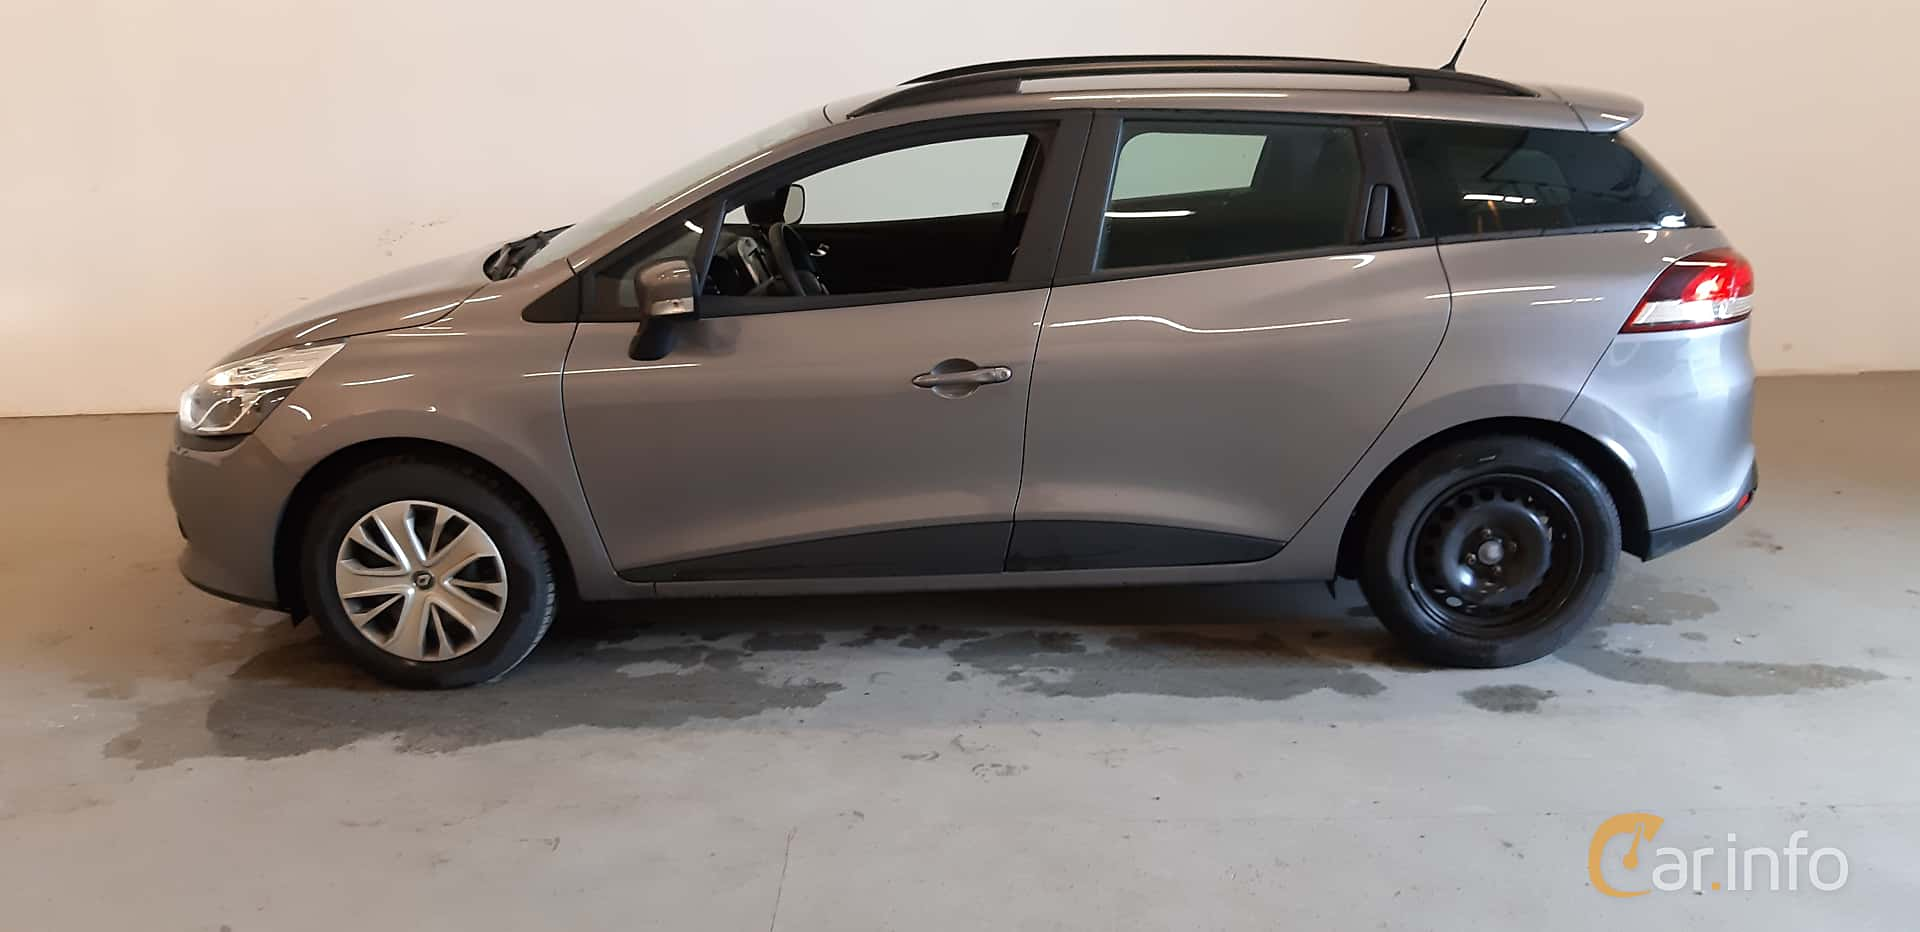 Side  of Renault Clio Grandtour 1.5 dCi Manual, 90ps, 2016